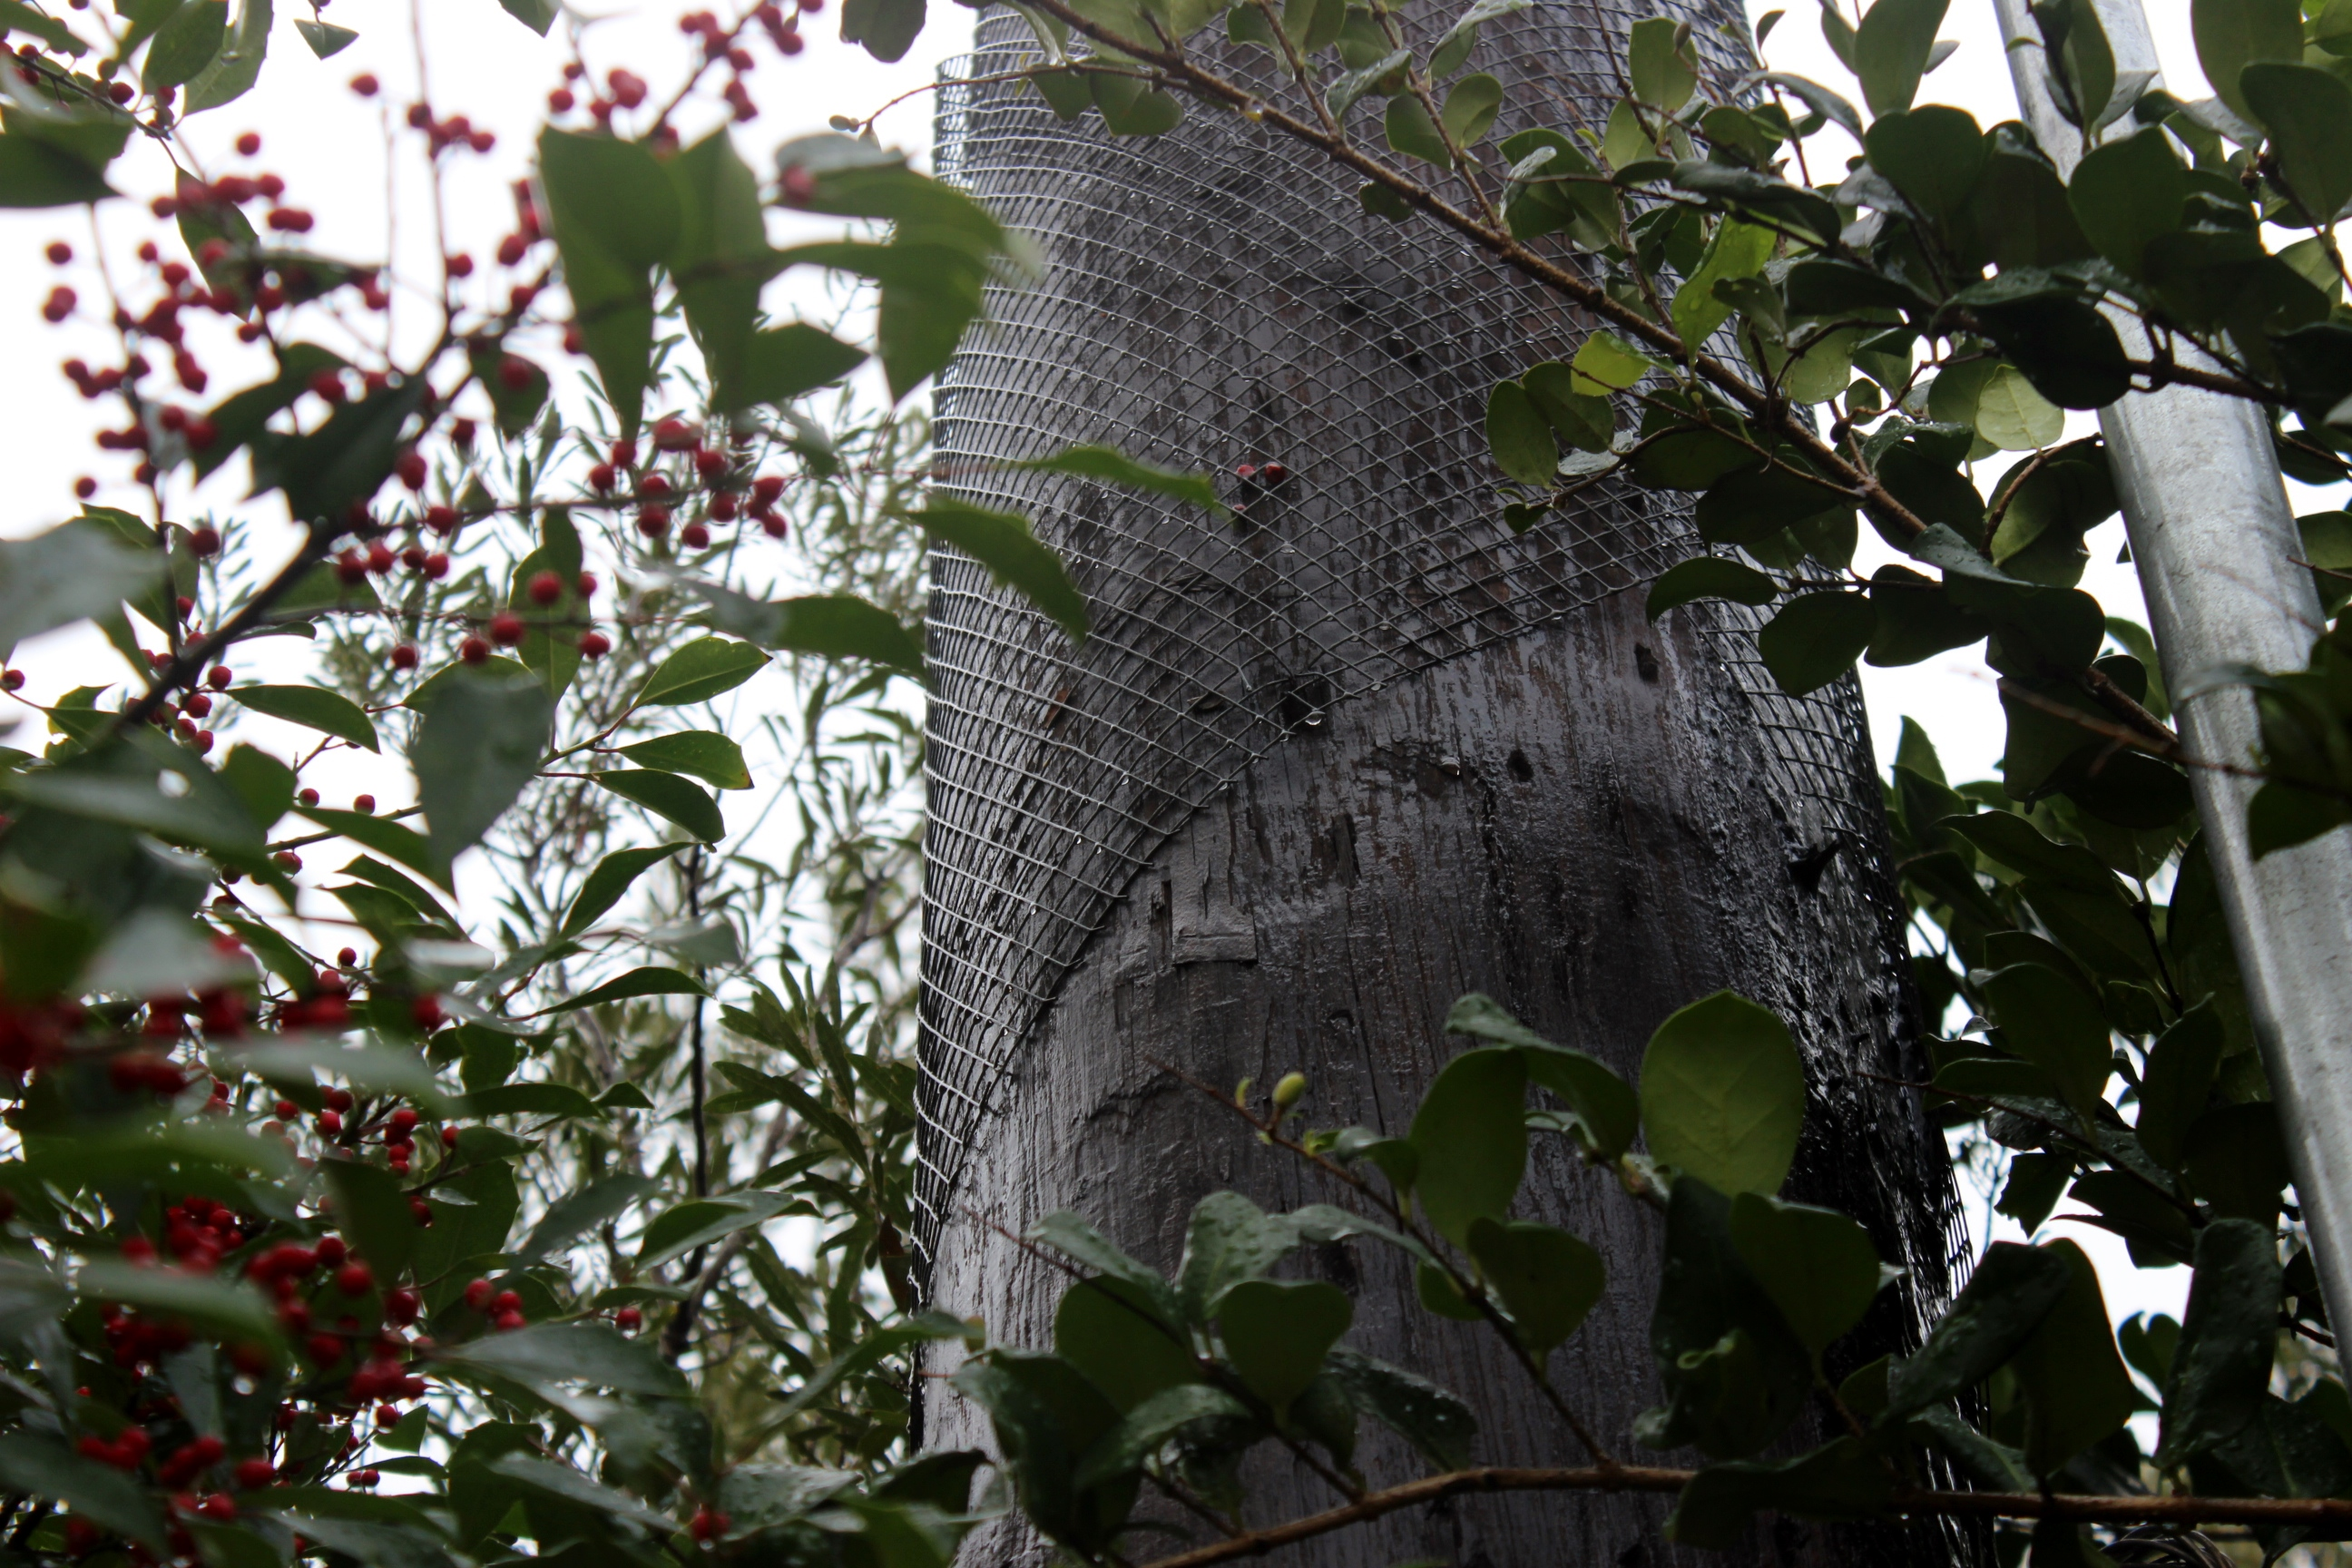 Wire mesh protects utility pole from woodpecker damage according to CenterPoint Energy